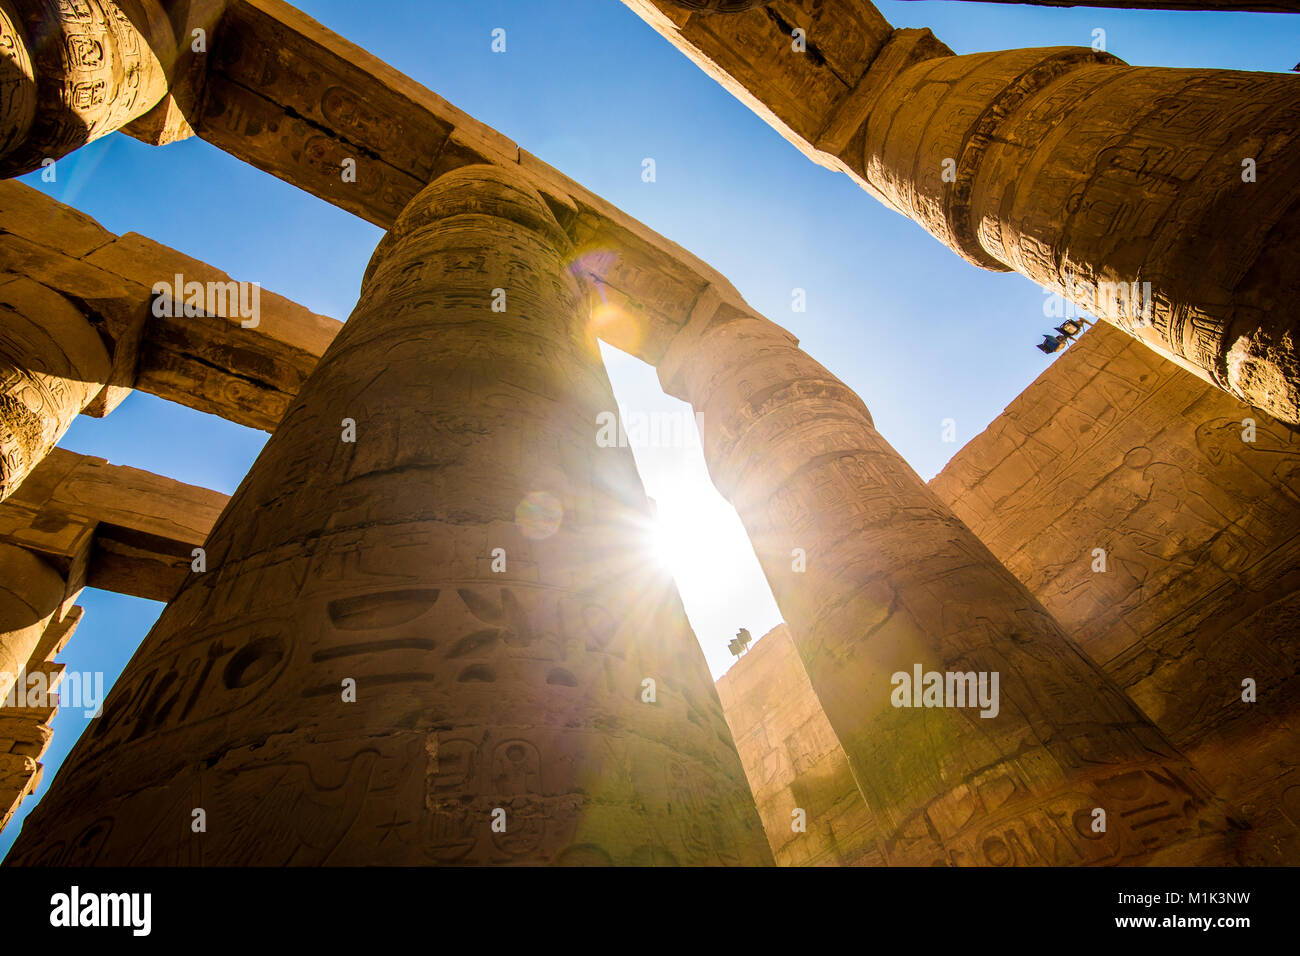 The Karnak temple in Luxor Egypt January 2018 - Stock Image